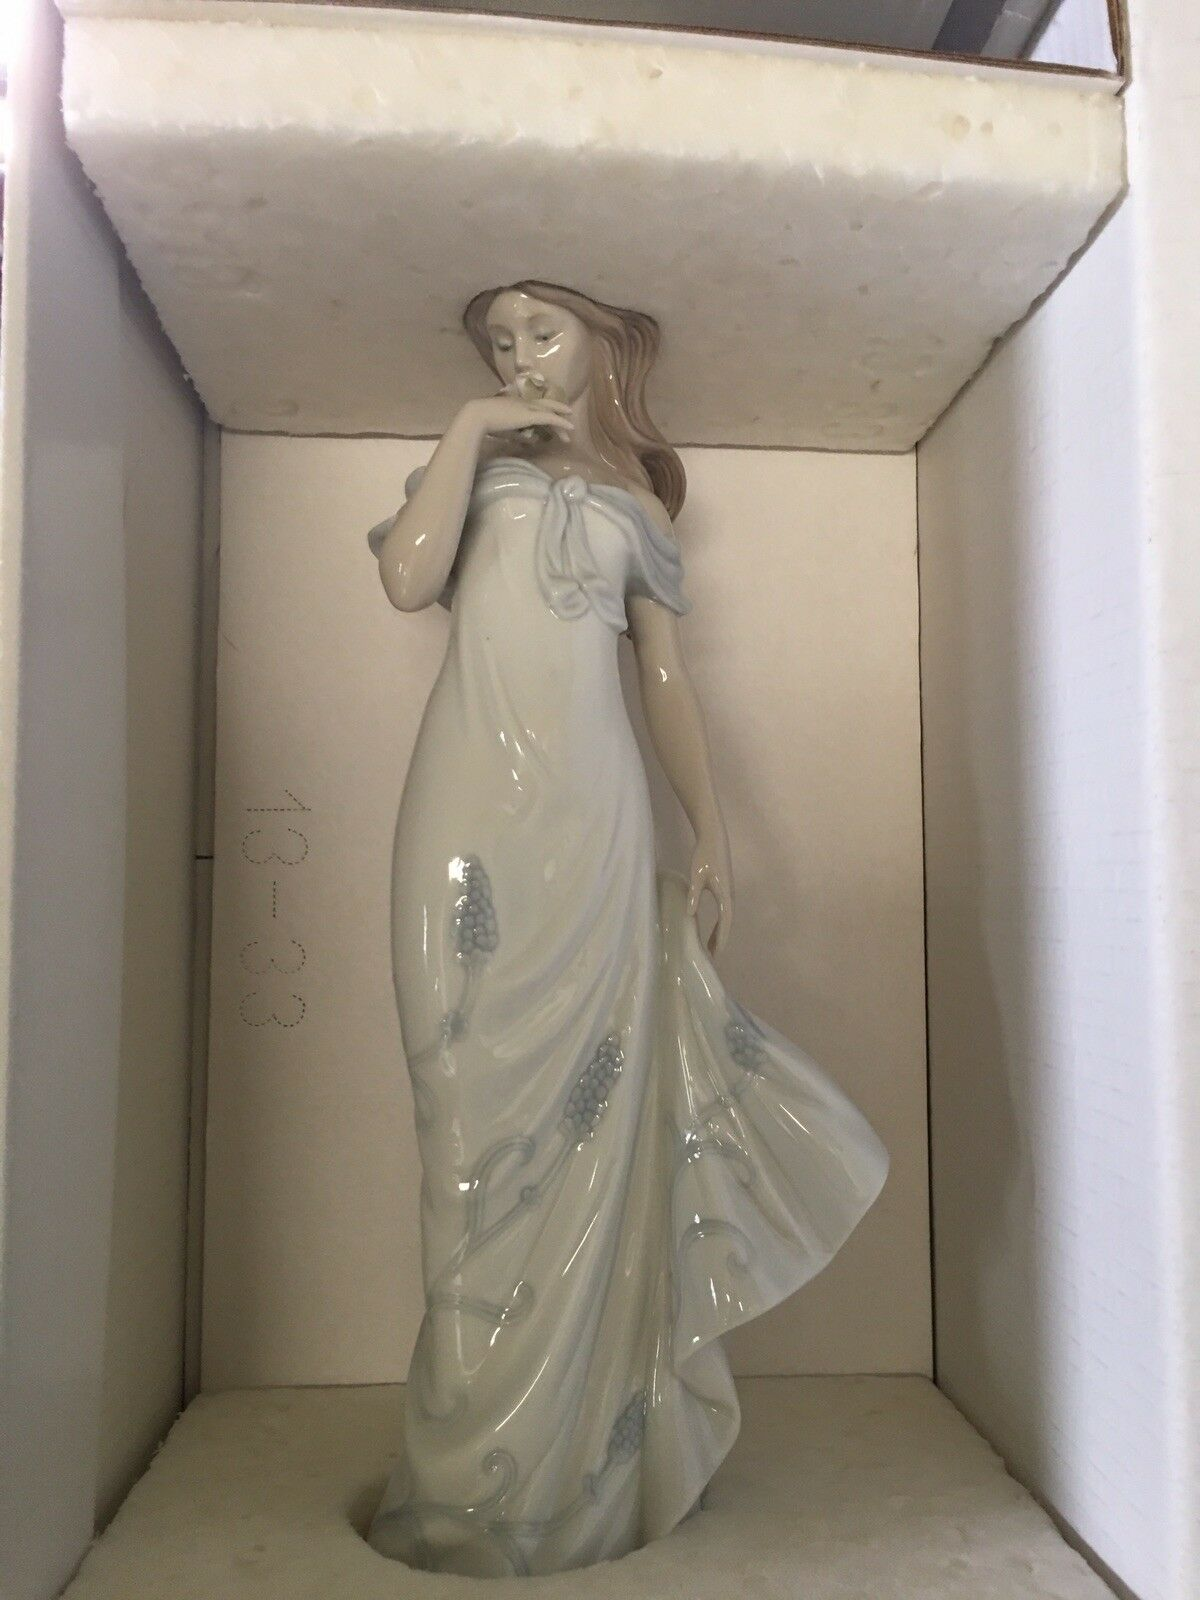 Authentic New Lladro Lady And The Rose Figurine In Its Original Box